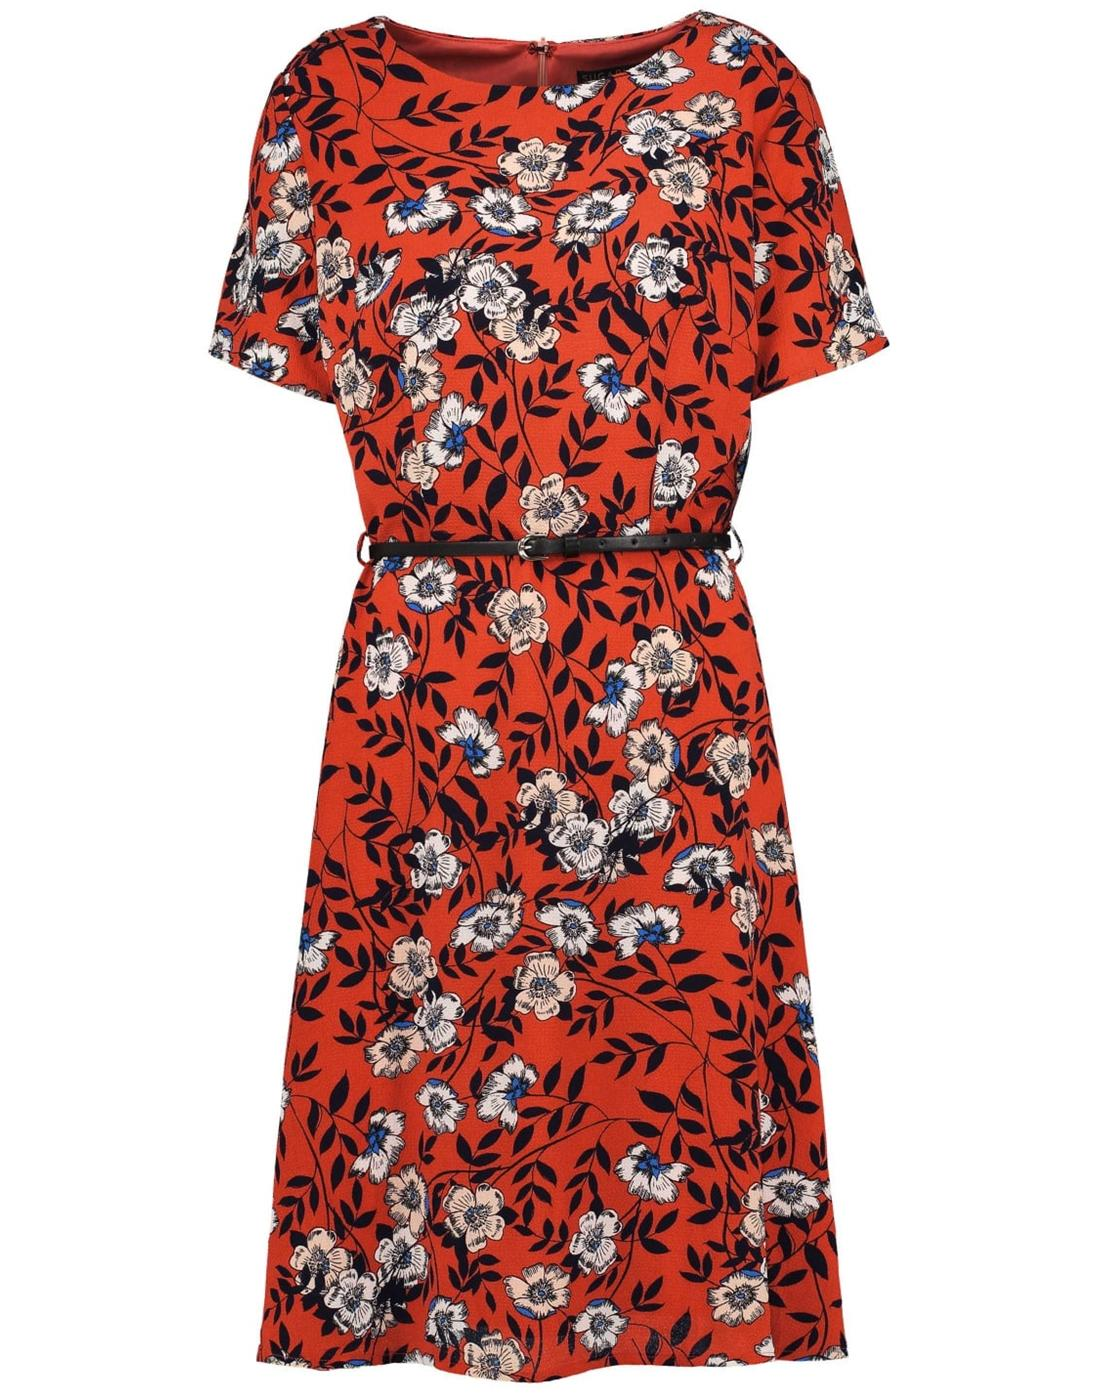 Ohara SUGARHILL BOUTIQUE Retro Floral Tea Dress R